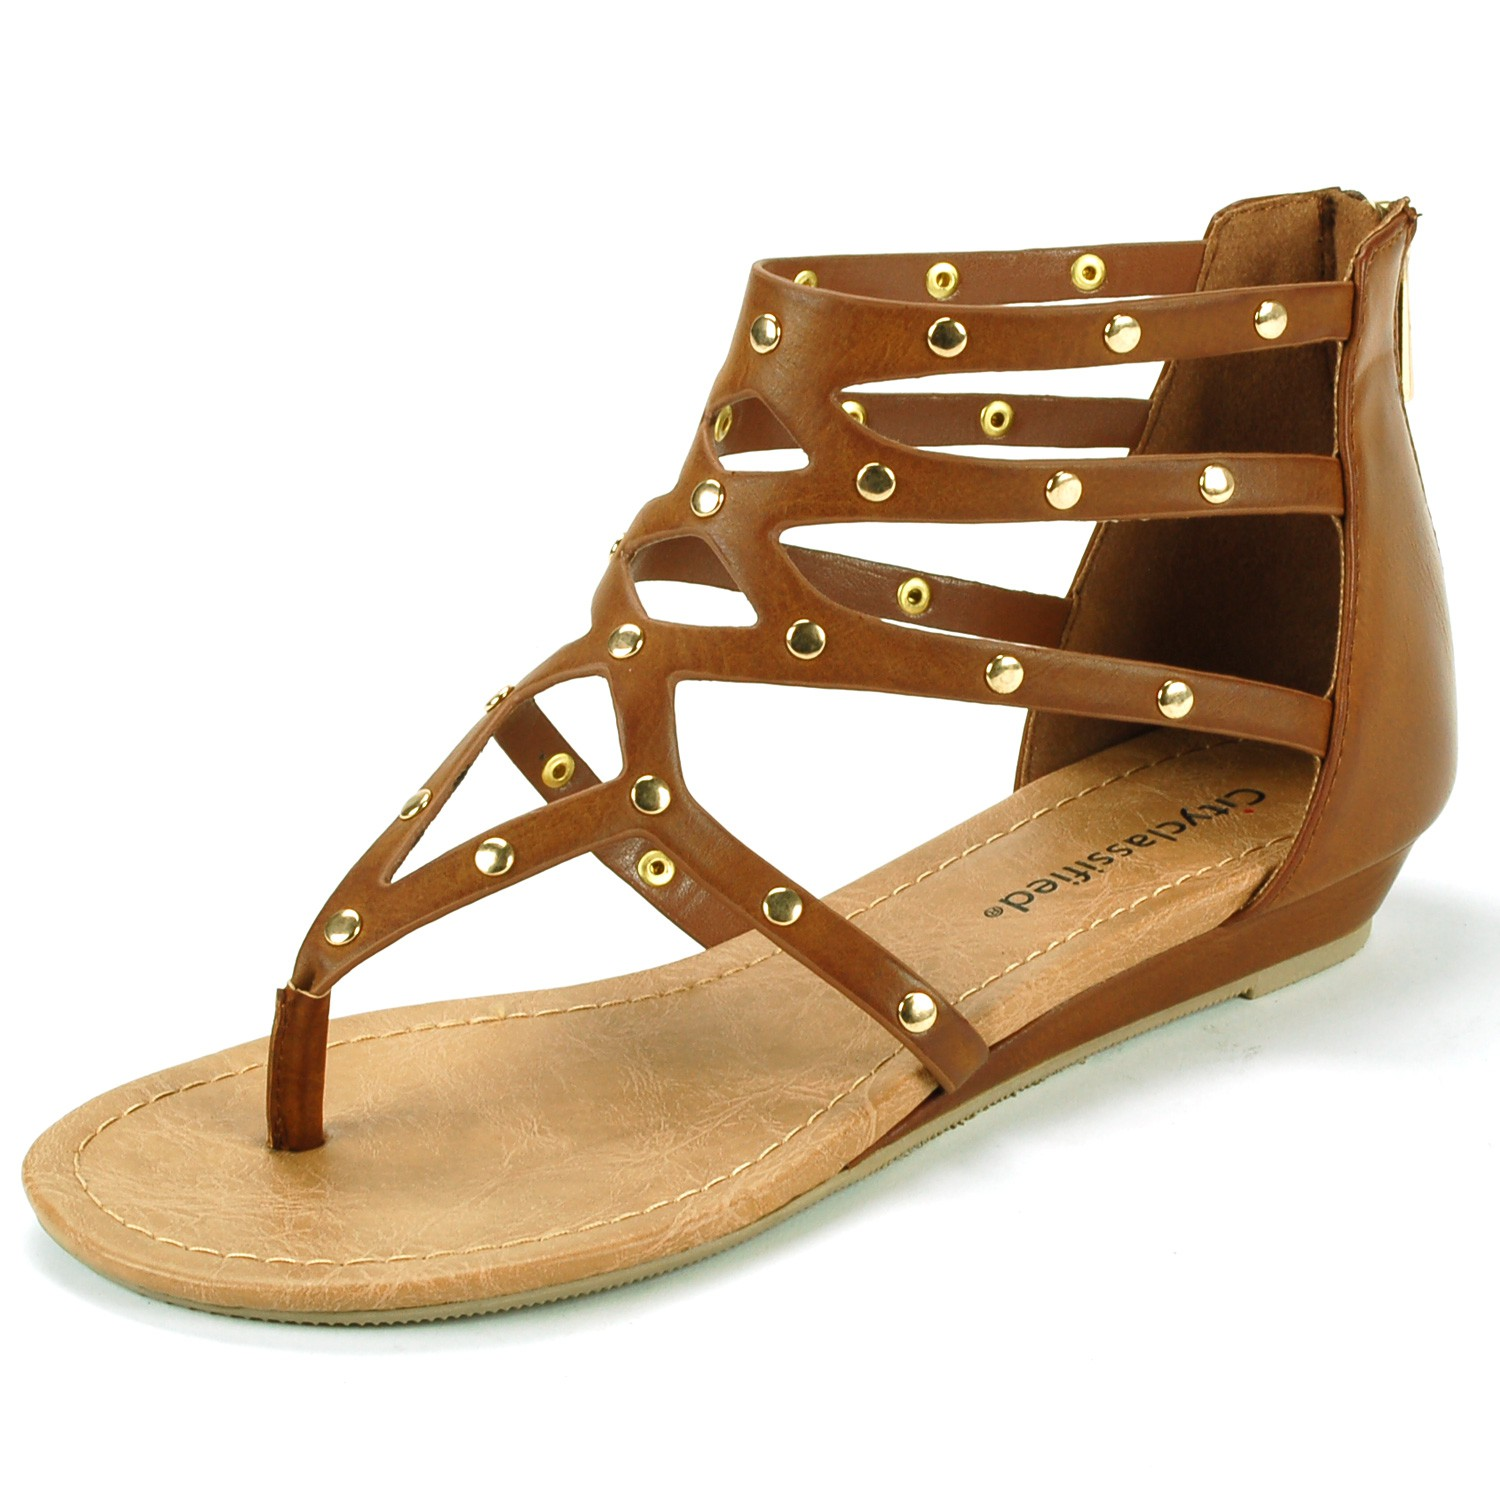 City Classified Womens Gladiator Sandals Strappy Thong Studded Ankle Roman Shoes Slip On Zipper at Sears.com